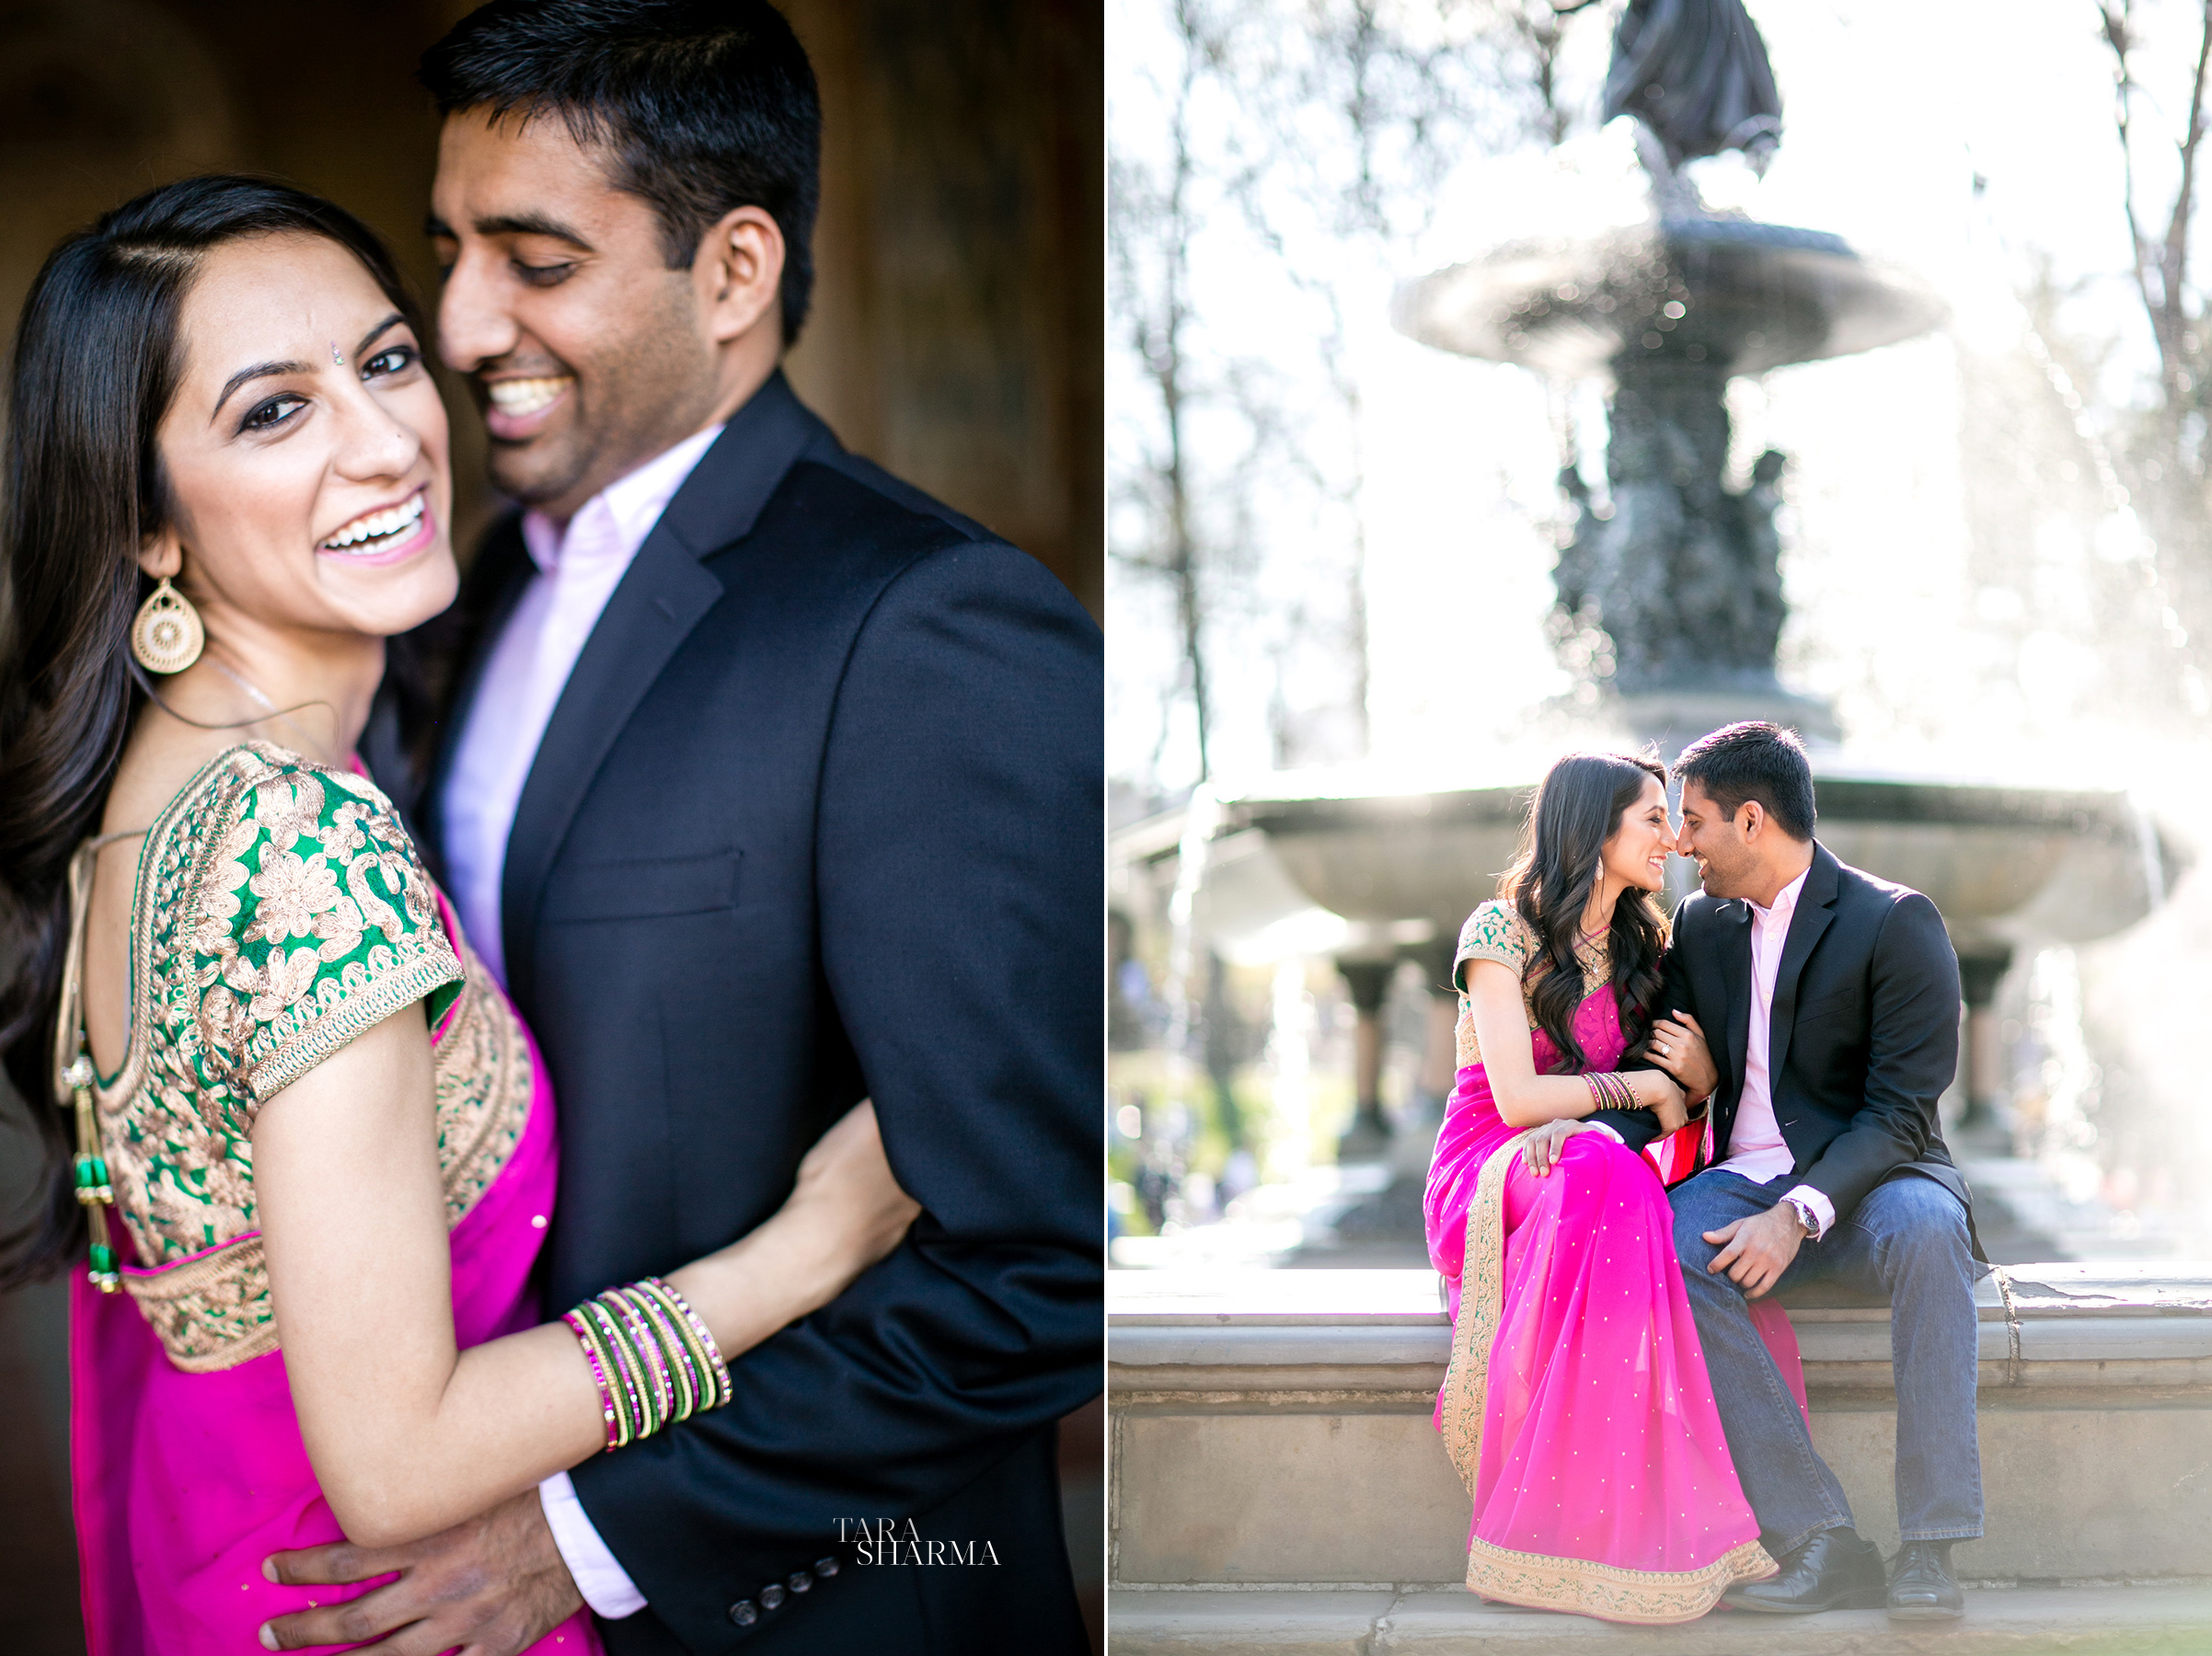 NYCEngagement_CentralPark_004